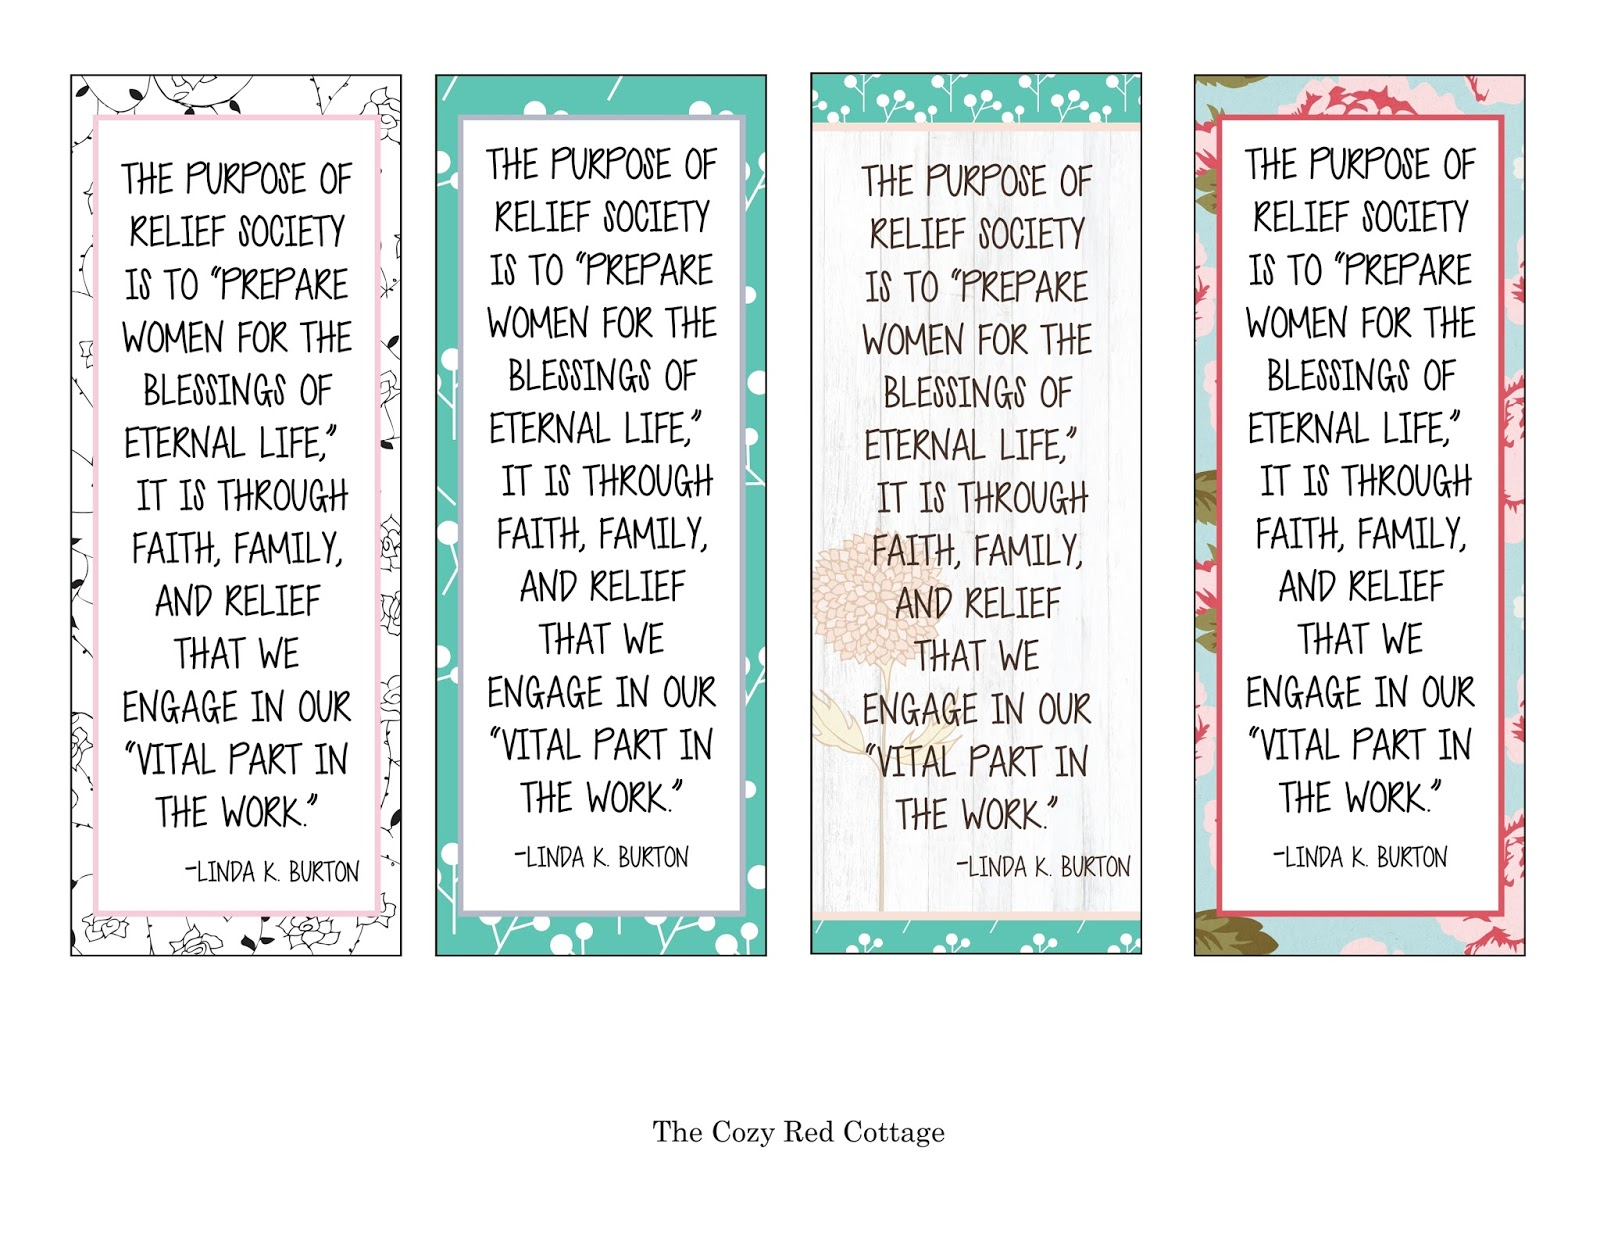 photo relating to Relief Society Declaration Printable referred to as The Comfortable Crimson Cottage: The Reason of Reduction Lifestyle Bookmark